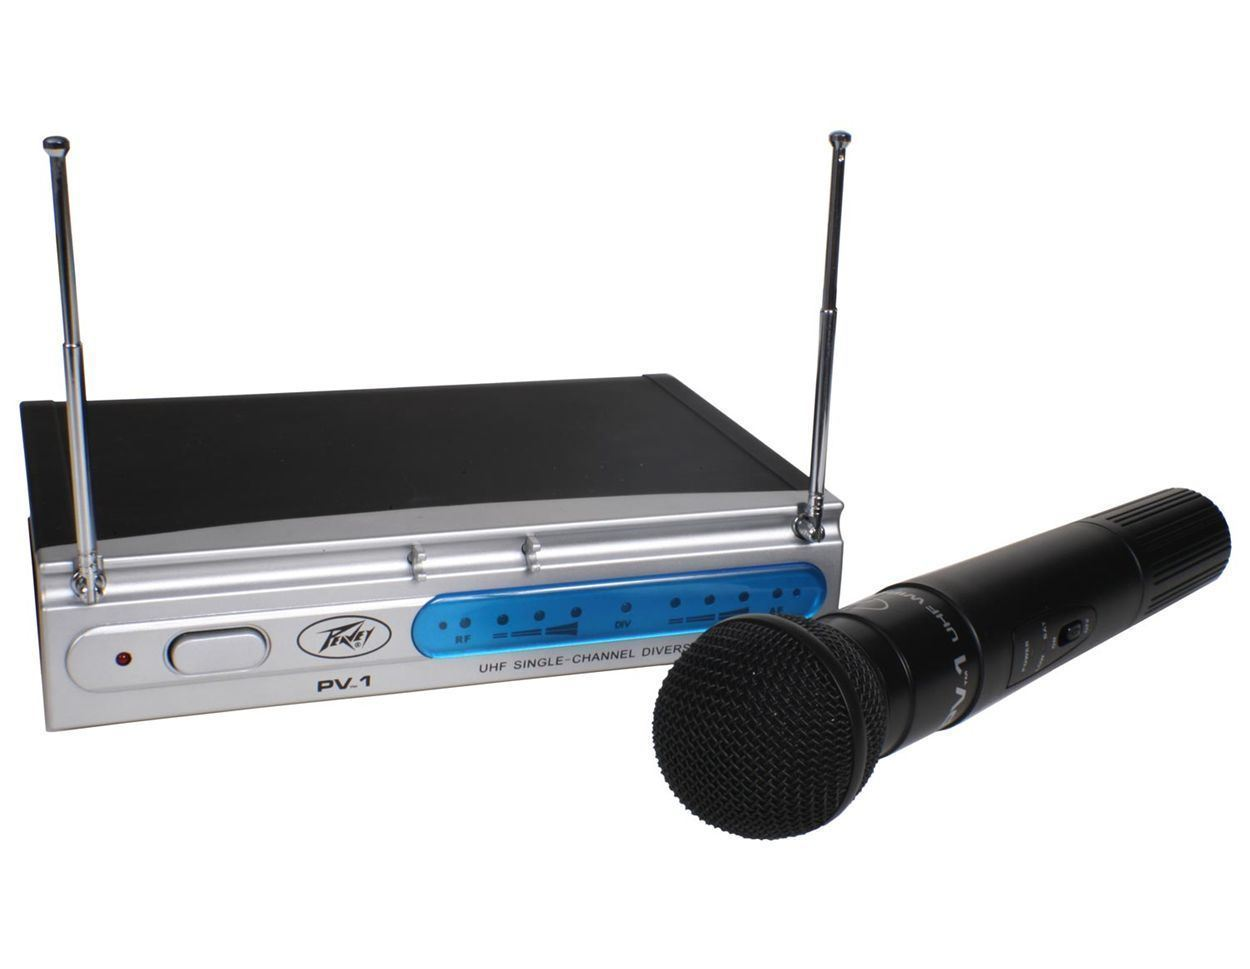 Peavey PV-1 U1 HH 911.70 Mhz Mic Wireless Handheld Microphone System by Peavey Electronics